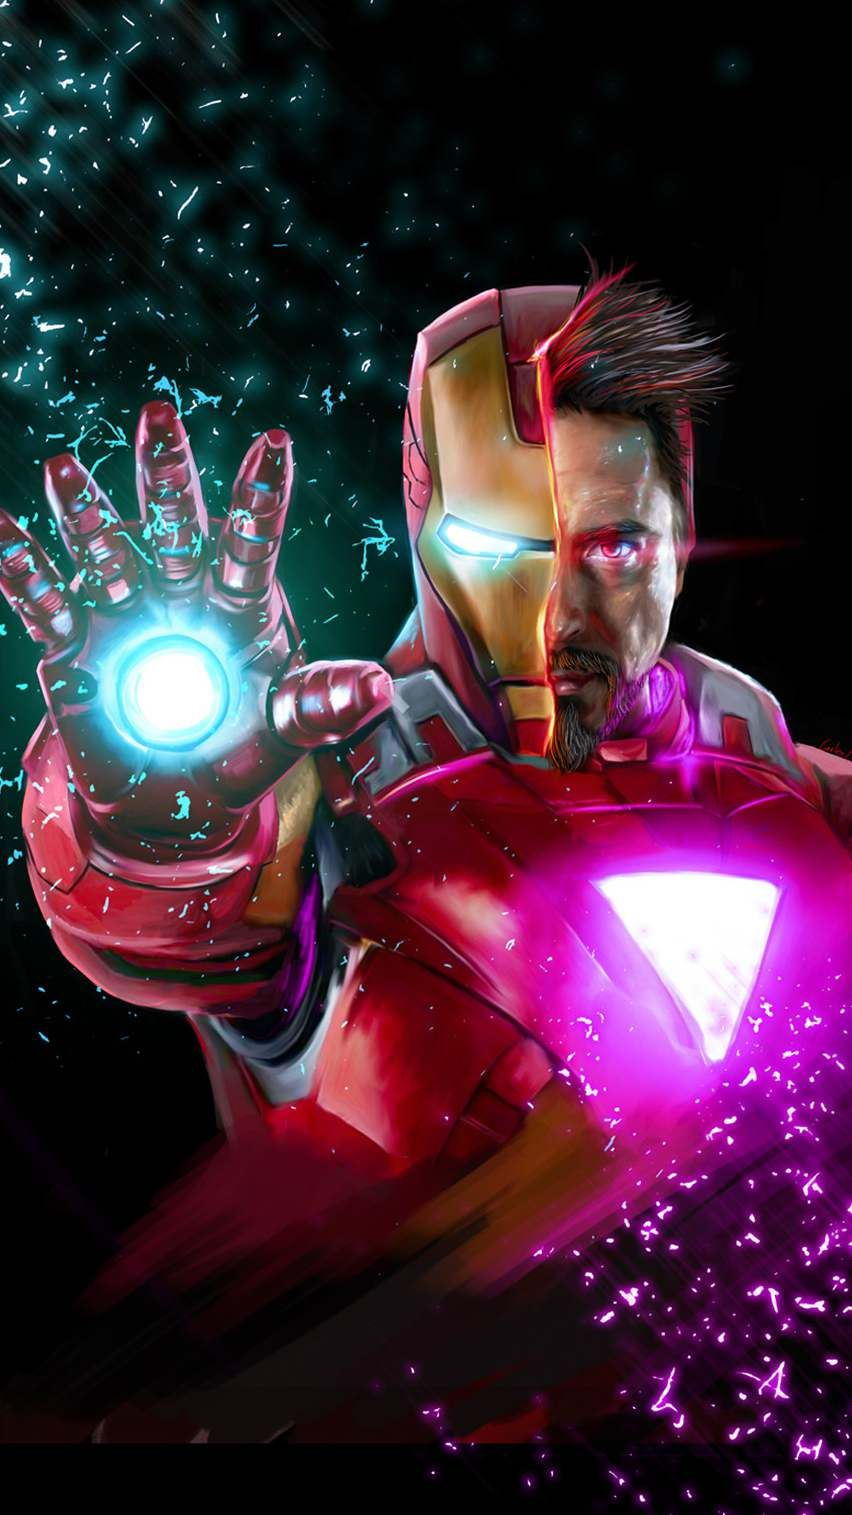 Mark 50 Iron Man Endgame Wallpaper In 2020 Marvel Iron Man Iron Man Movie Iron Man Art